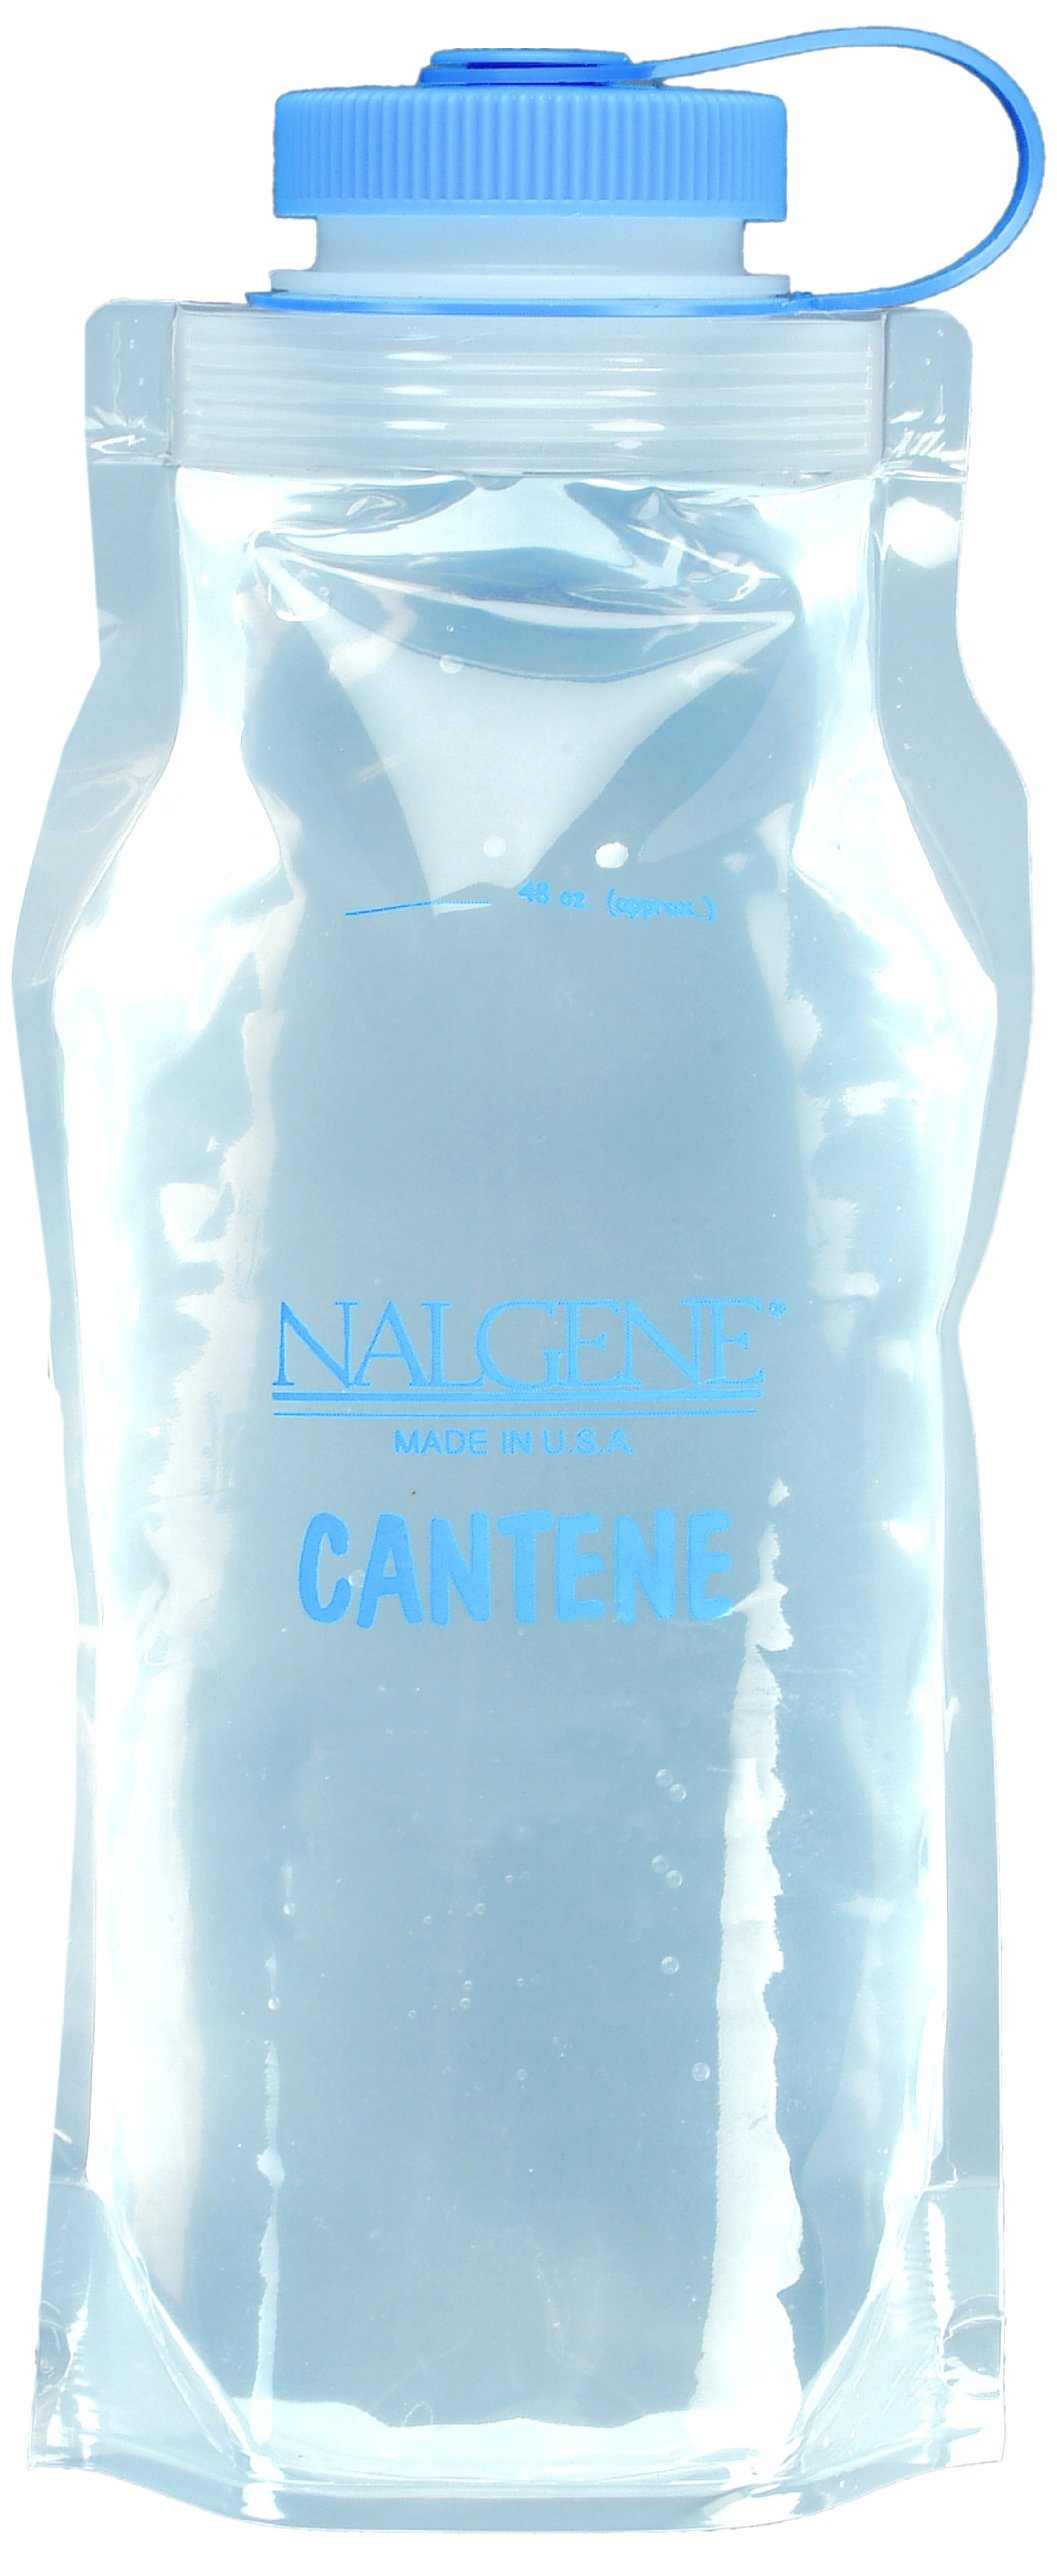 Nalgene Wide Mouth Cantene (32-Ounce) by Nalgene